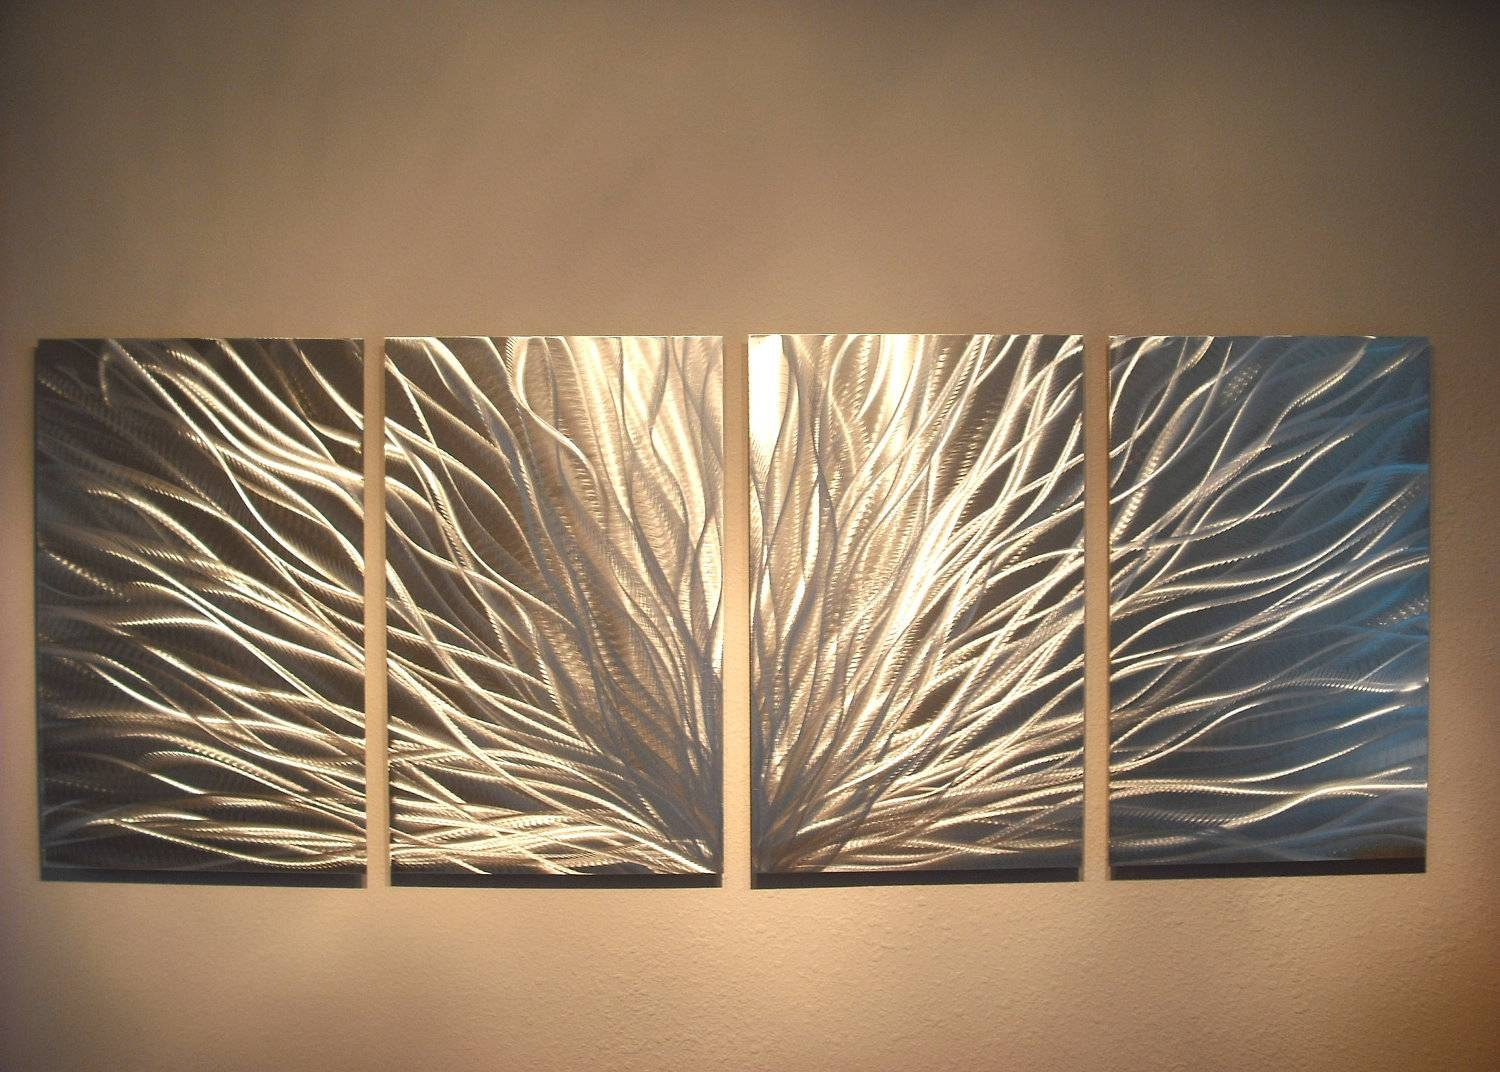 Radiance – Abstract Metal Wall Art Contemporary Modern Decor Inside Most Up To Date Metal Wall Art Panels (Gallery 17 of 20)